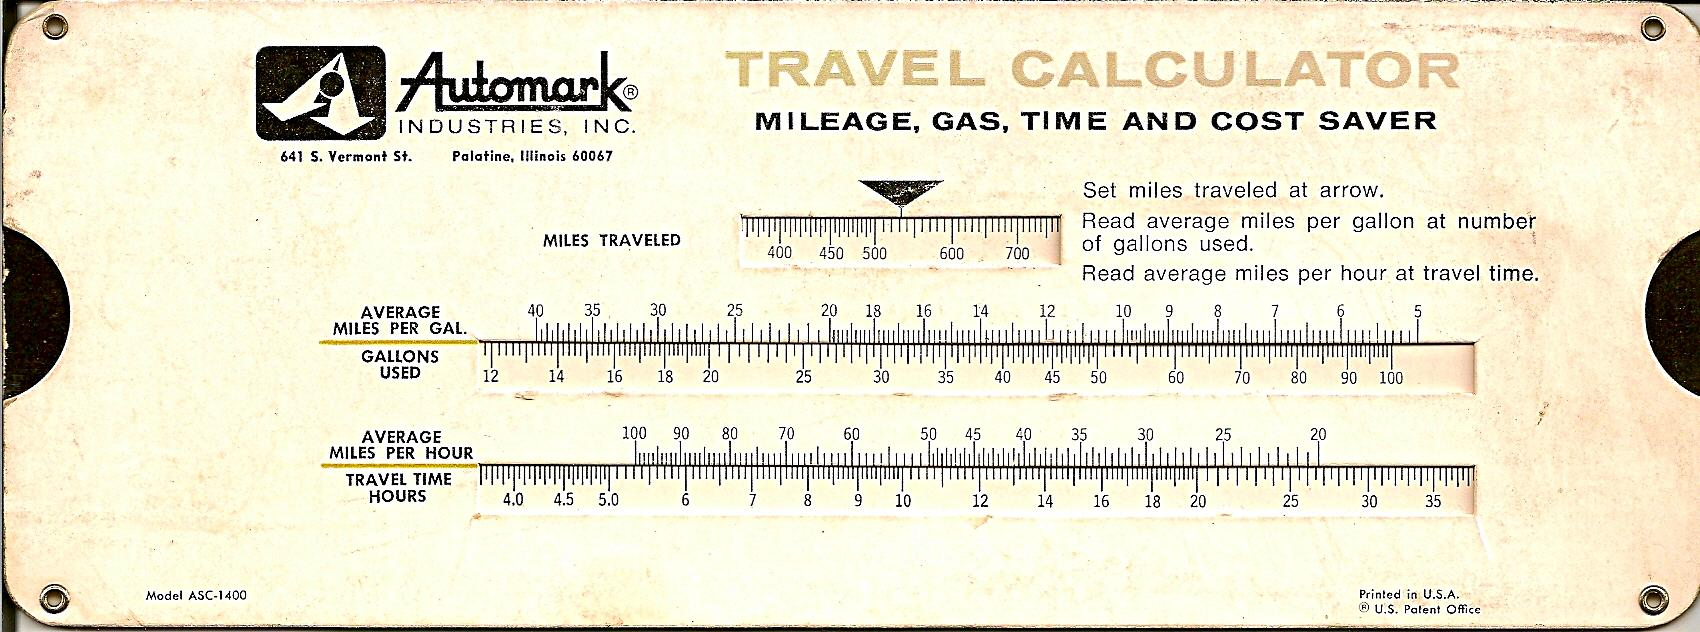 How To Calculate Travel Cost By Car